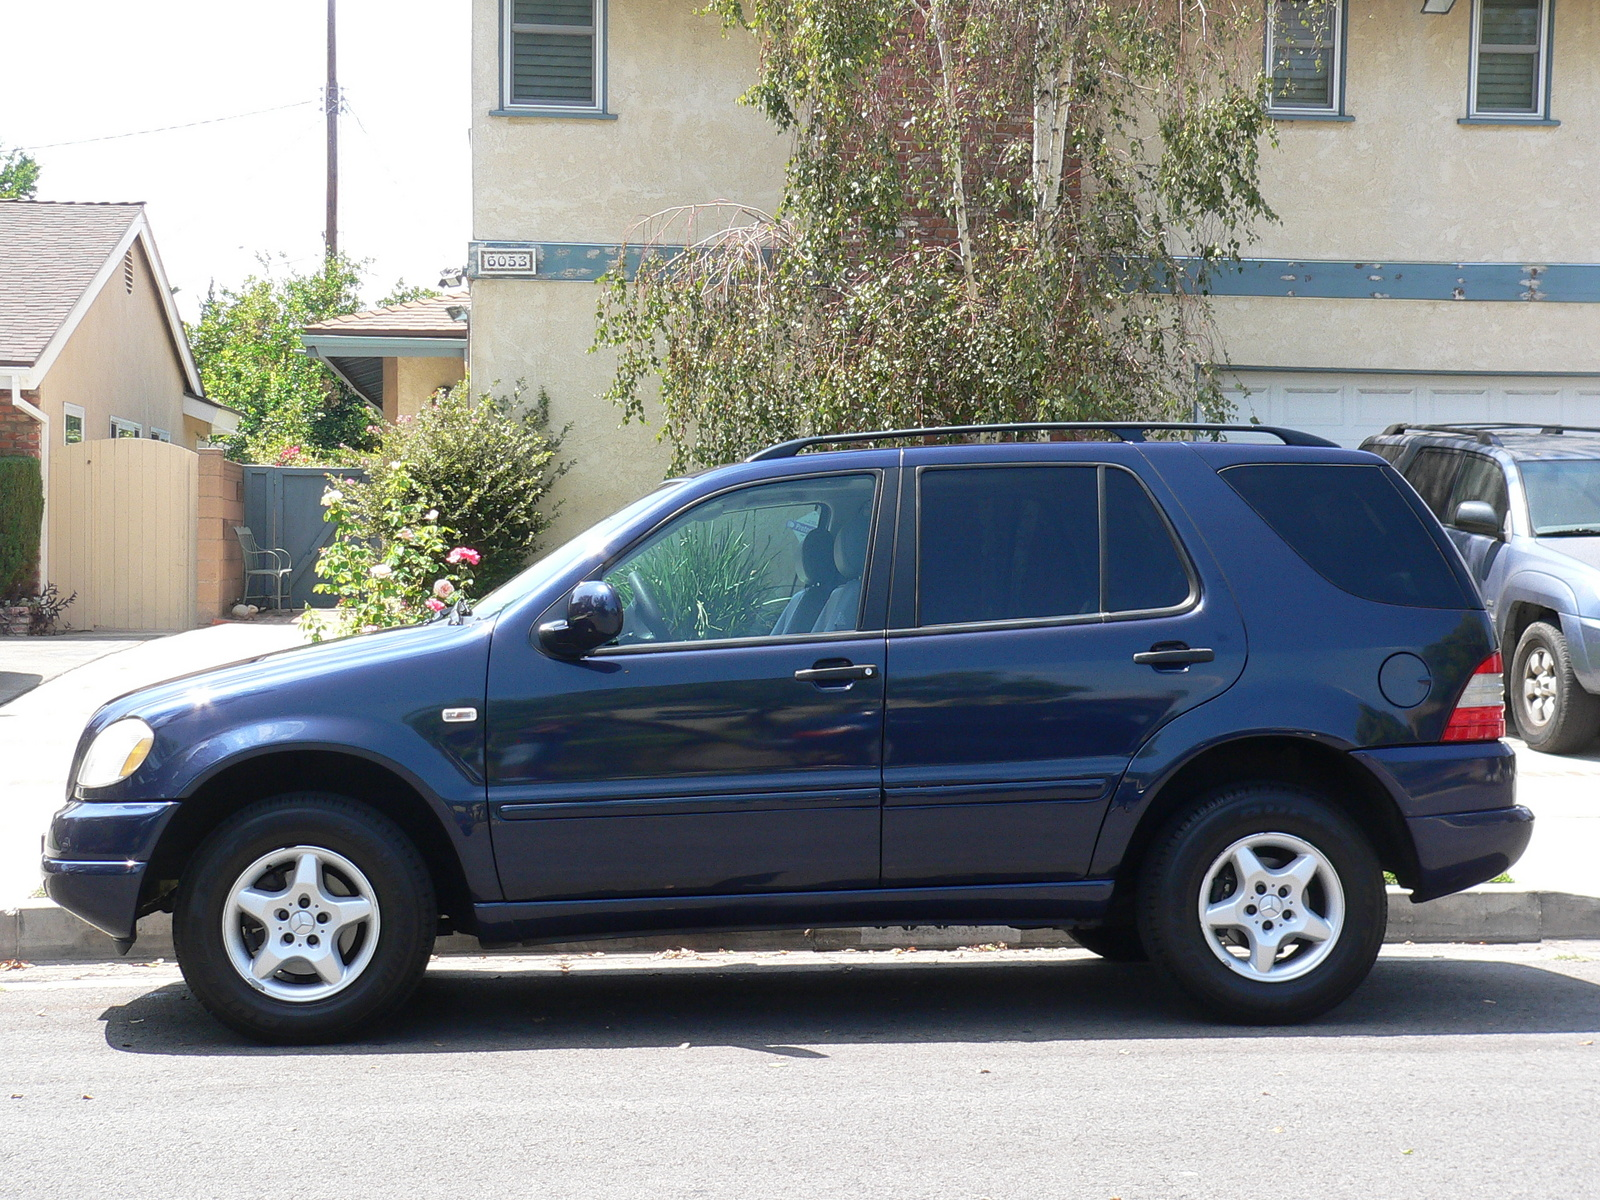 Picture of 2000 mercedes benz m class ml320 exterior for 2000 mercedes benz m class